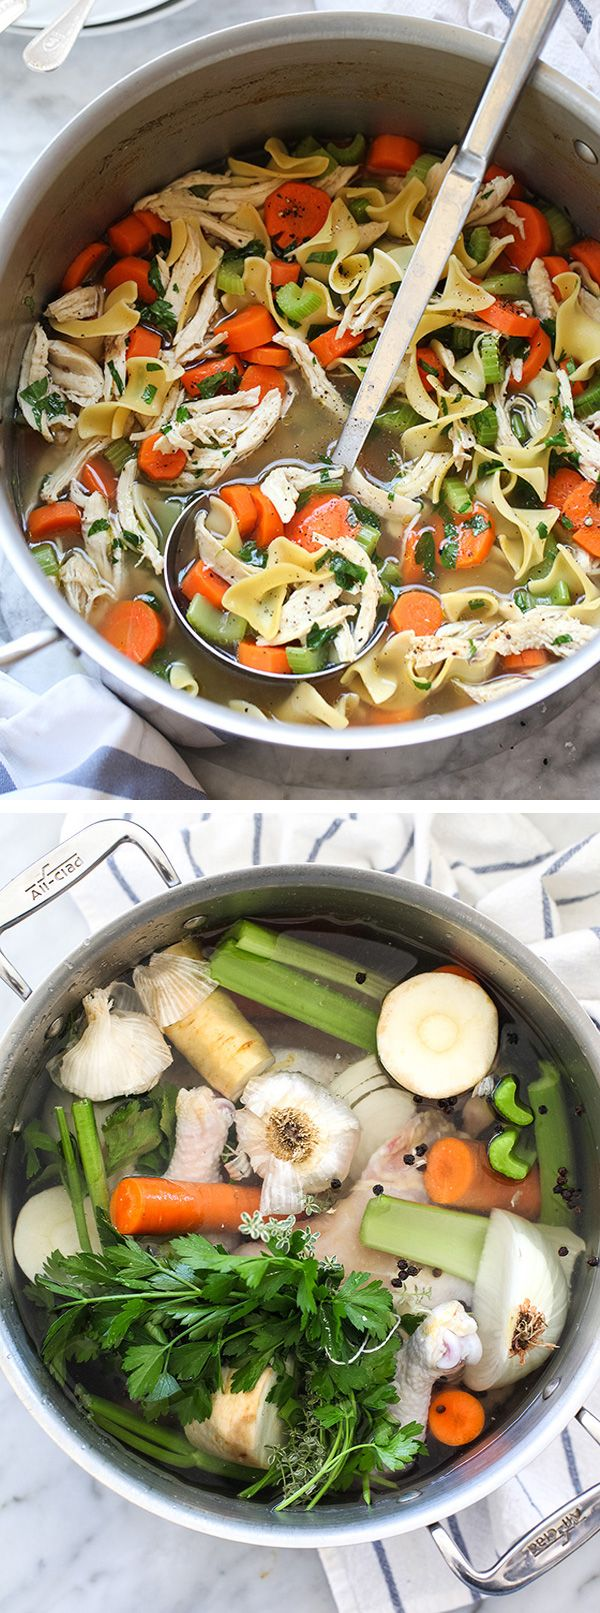 #Recipe: Homemade Chicken Noodle Soup